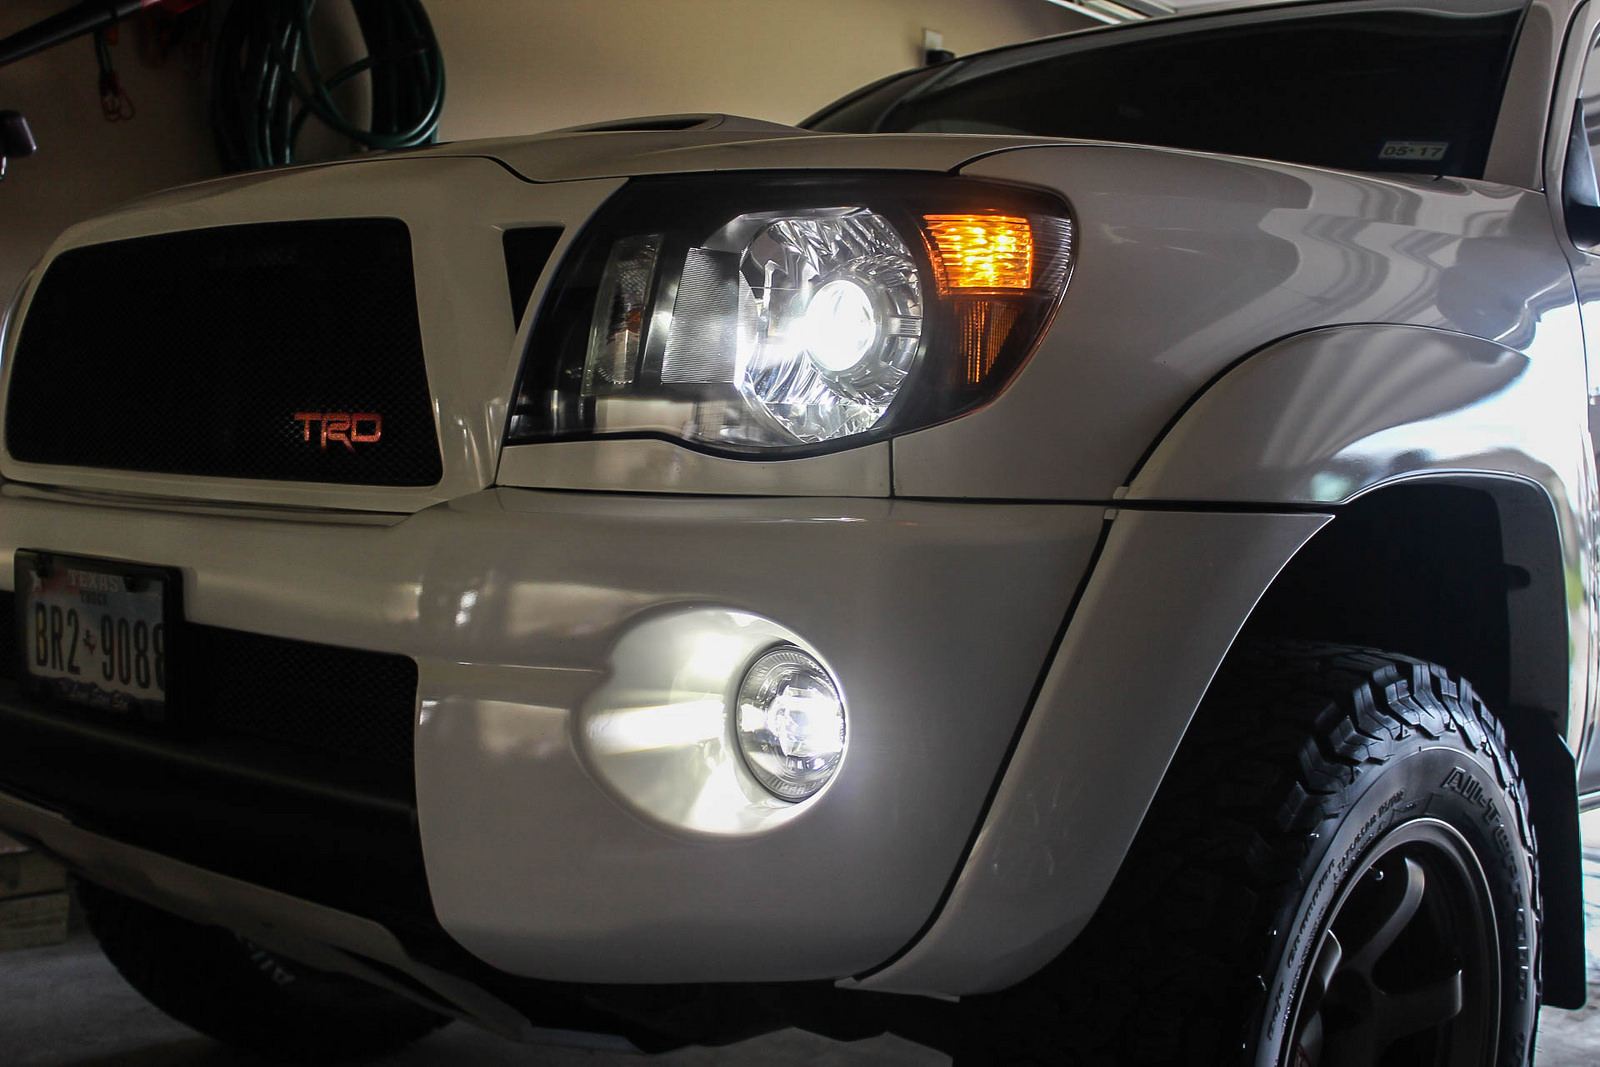 Morimoto Xb Led Fog Lights Toyota Round Winnipeg Hid Wiring Harness 2007 2013 Gmc Sierra Pickup Plug And Play Light T2 Action 3